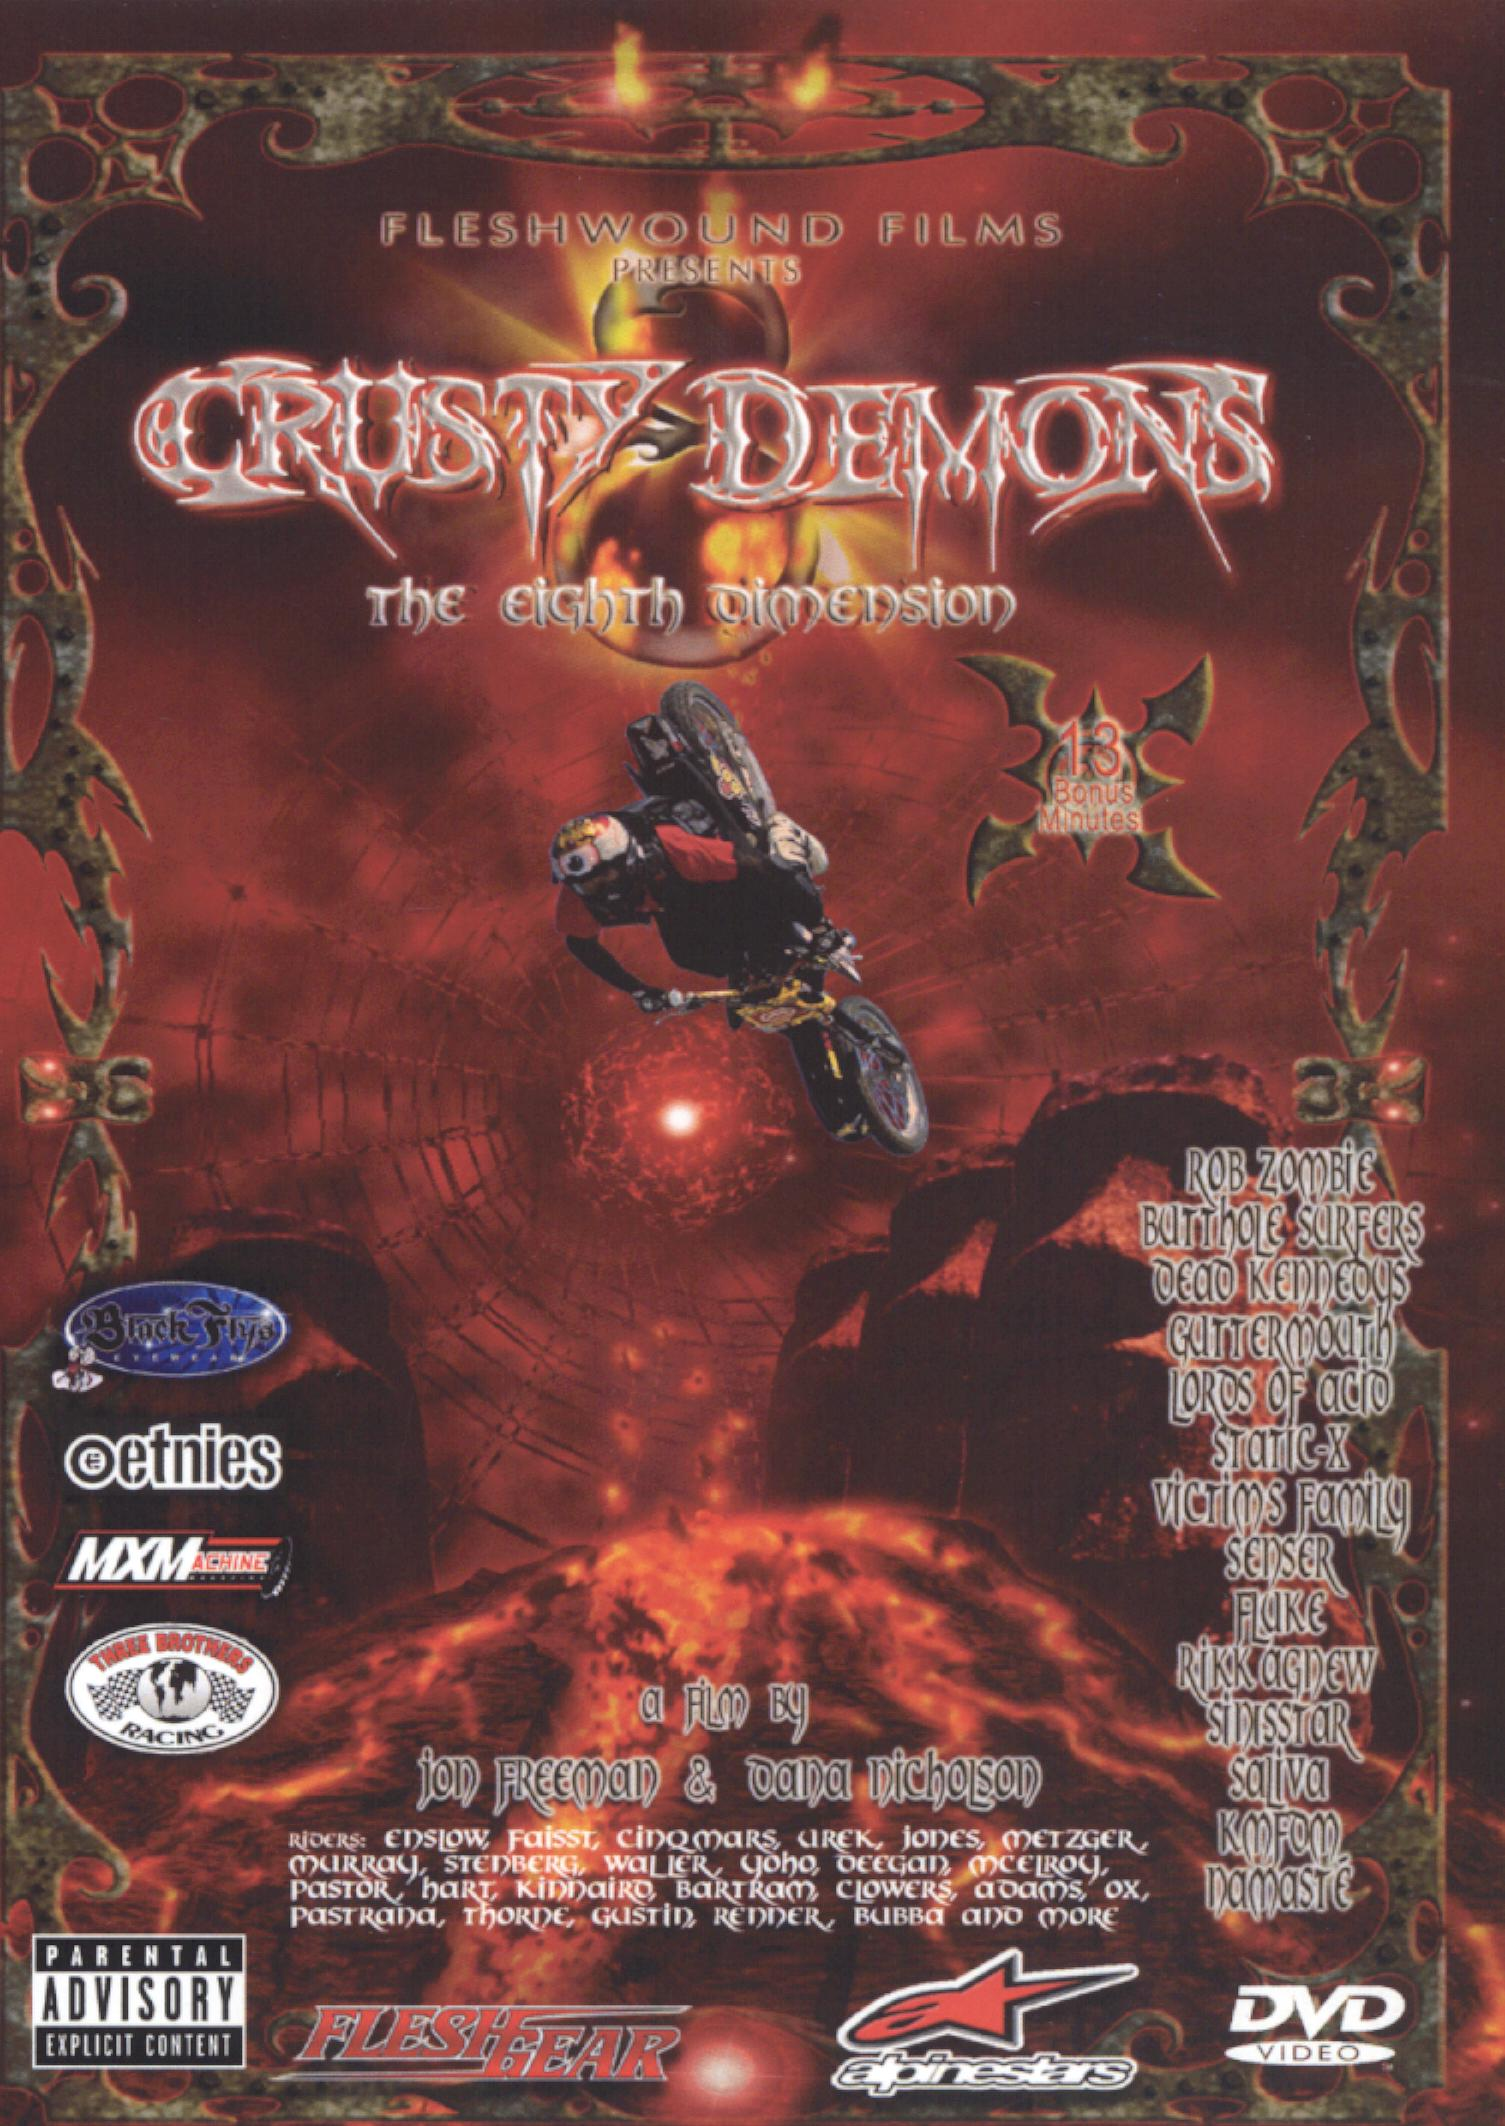 Crusty Demons: The Eighth Dimension